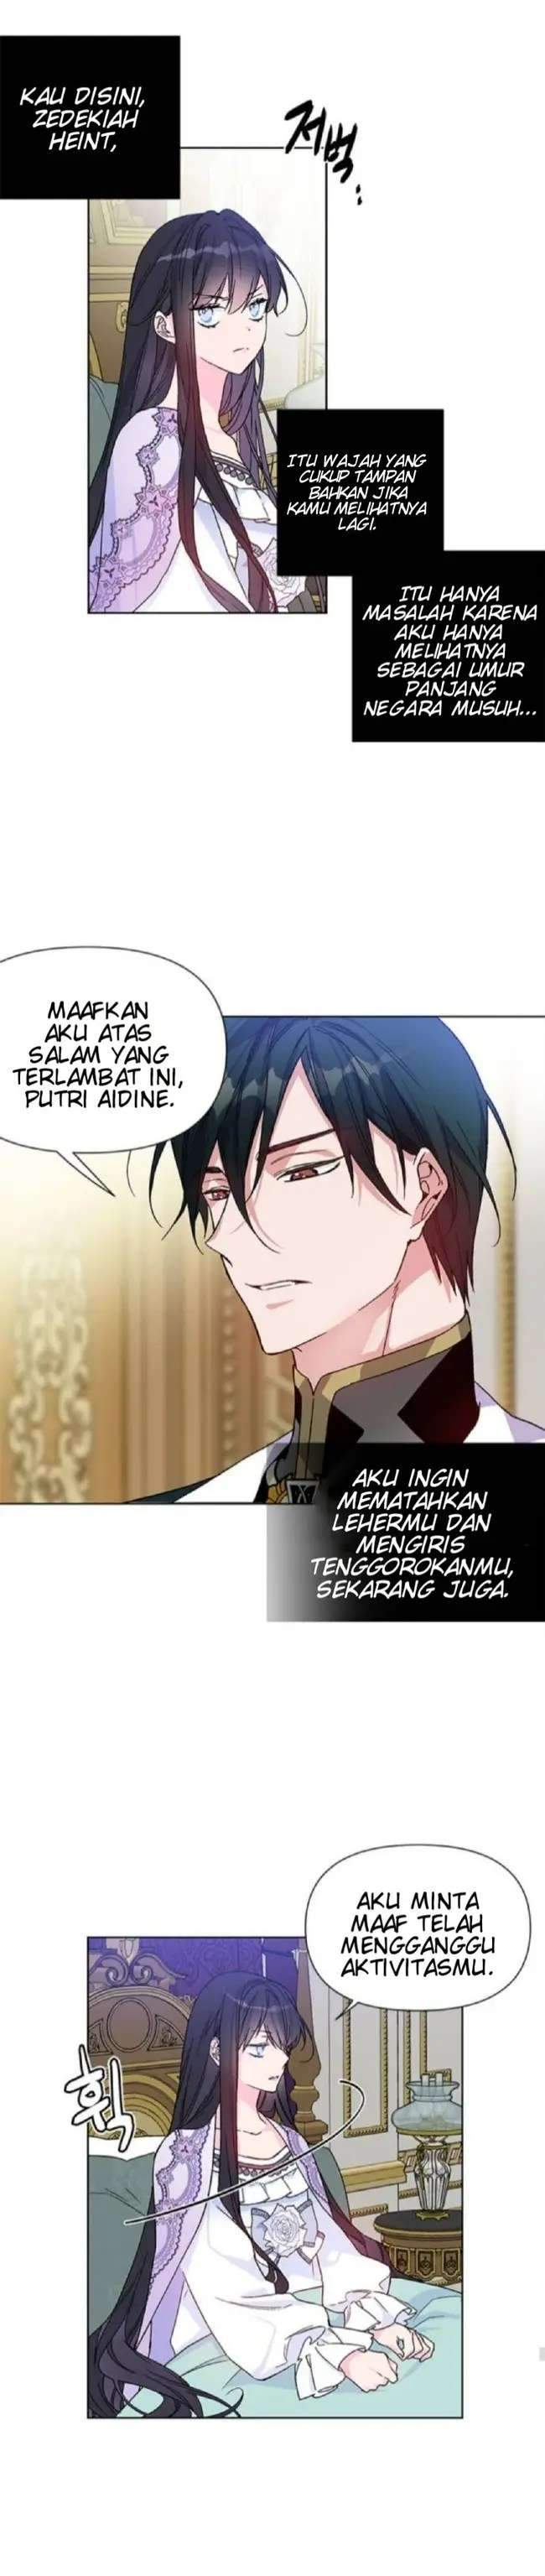 The Way That Knight Lives As a Lady Chapter 02